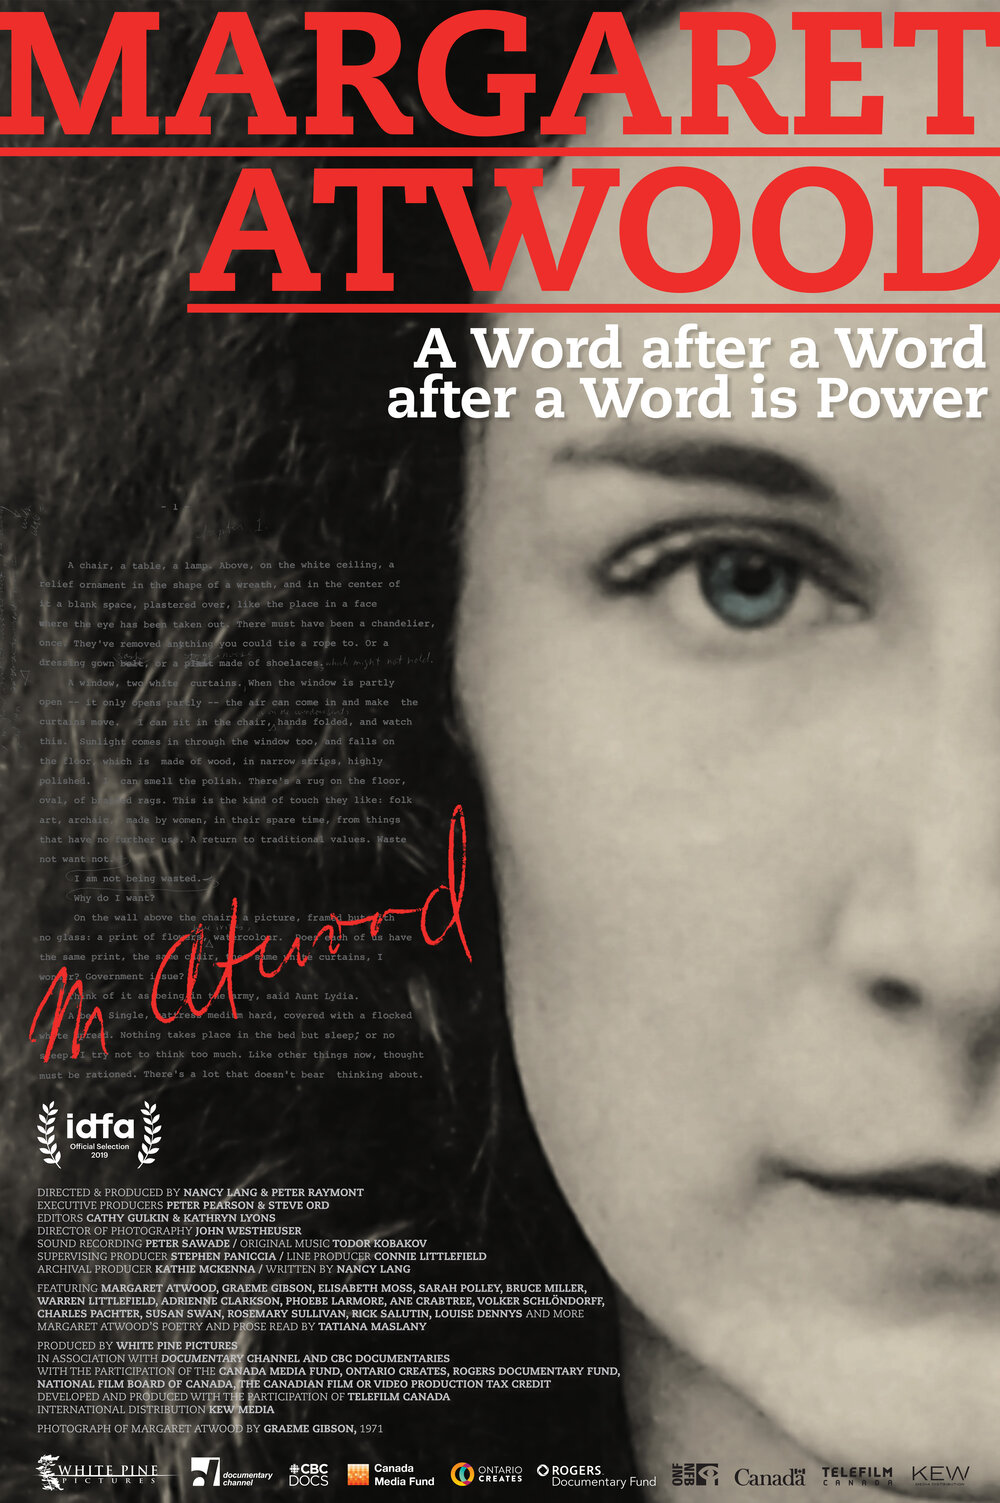 Margaret+Atwood+Poster+Final